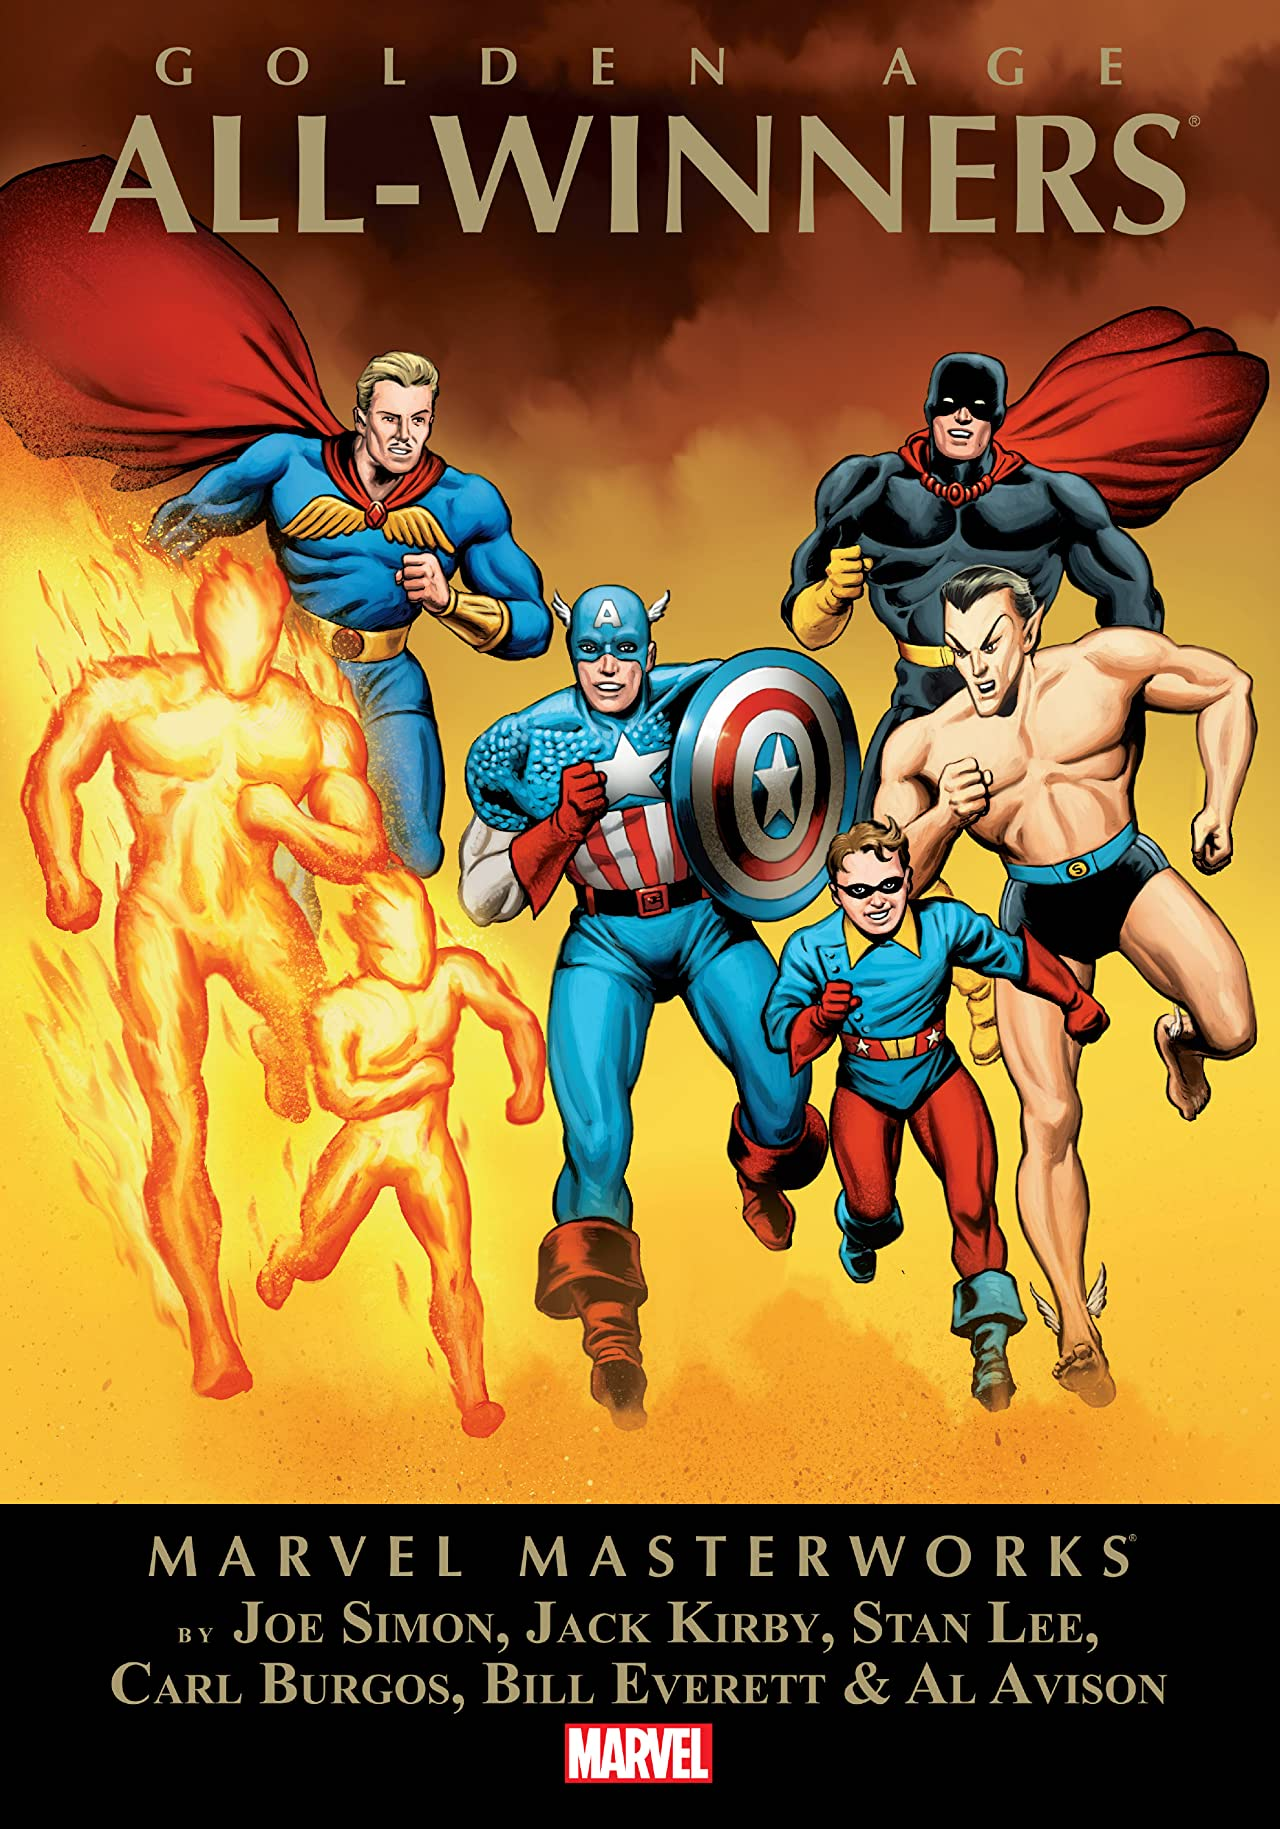 Golden Age All-Winners Masterworks Vol. 1